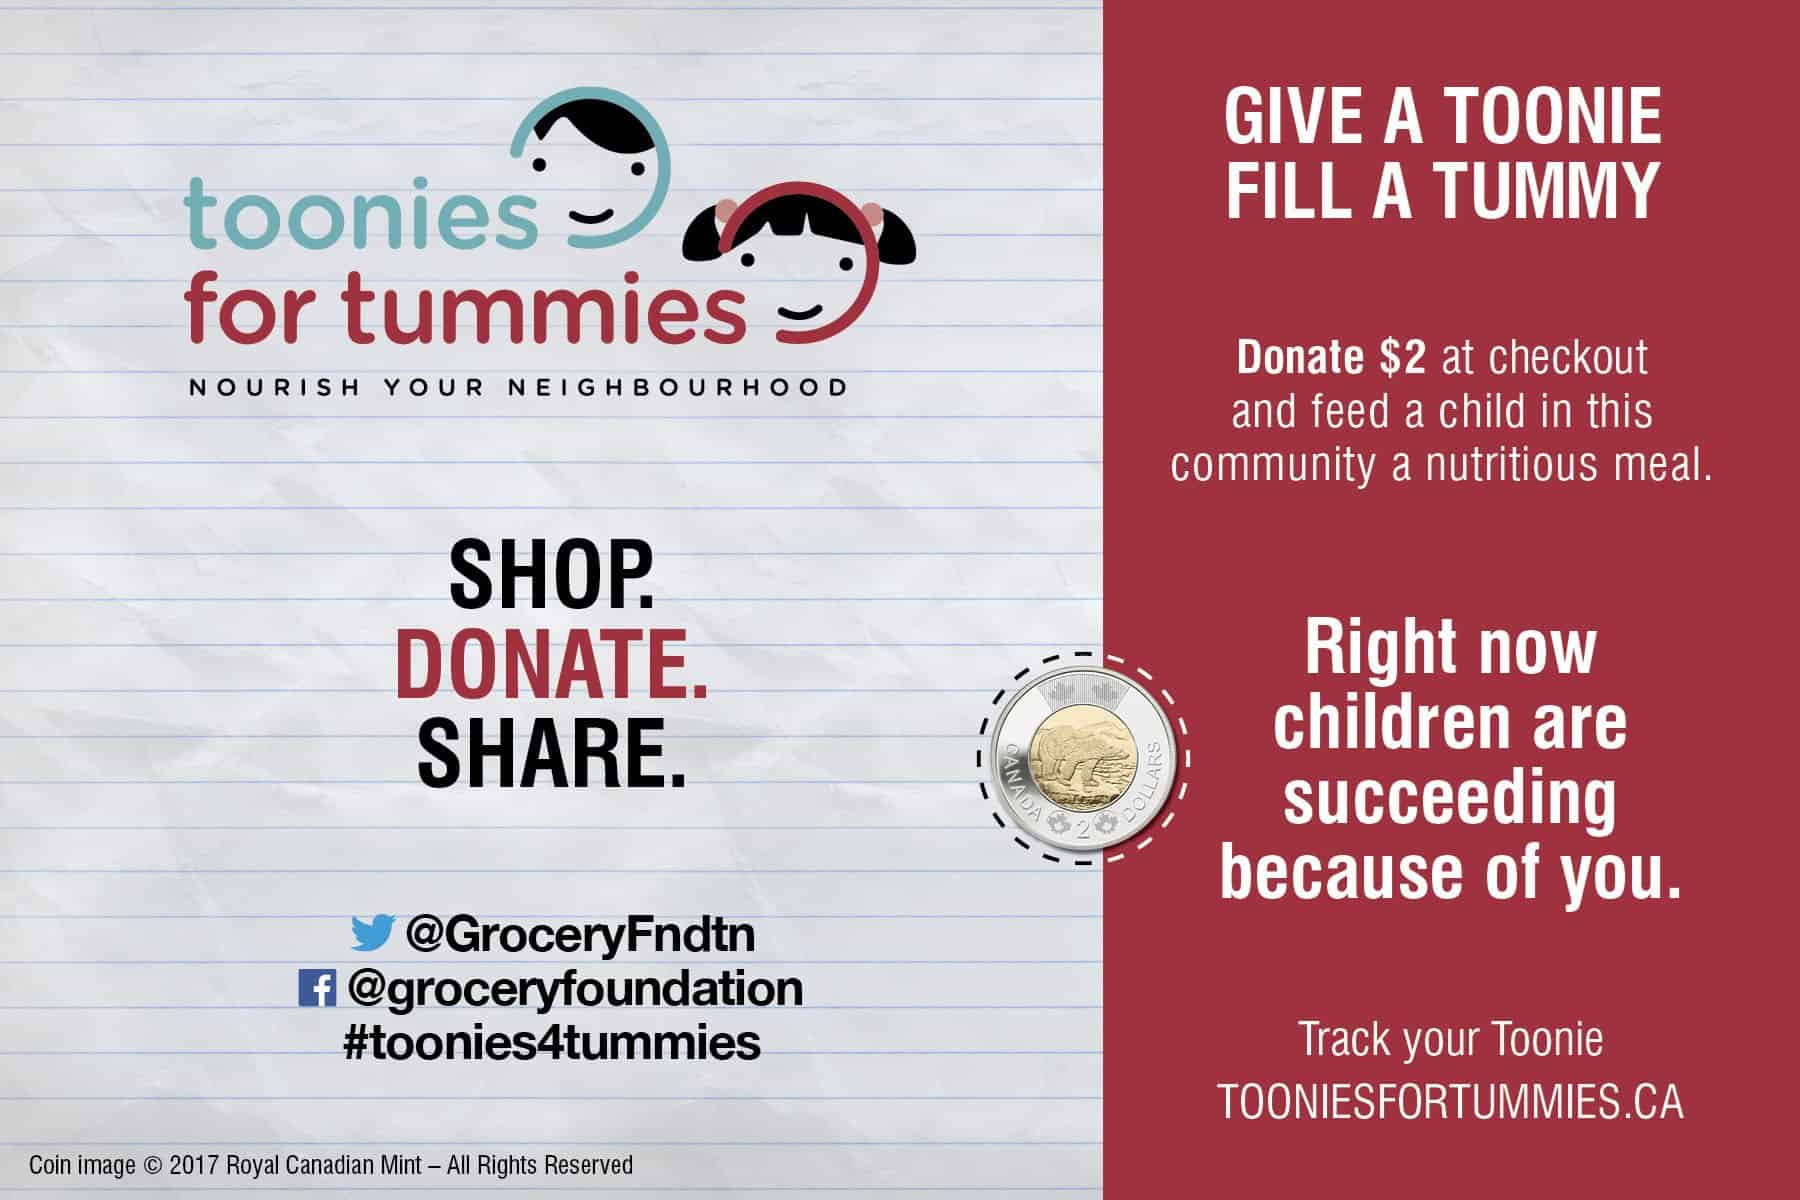 The Grocery Foundation Toonies for Tummies #toonies4tummies